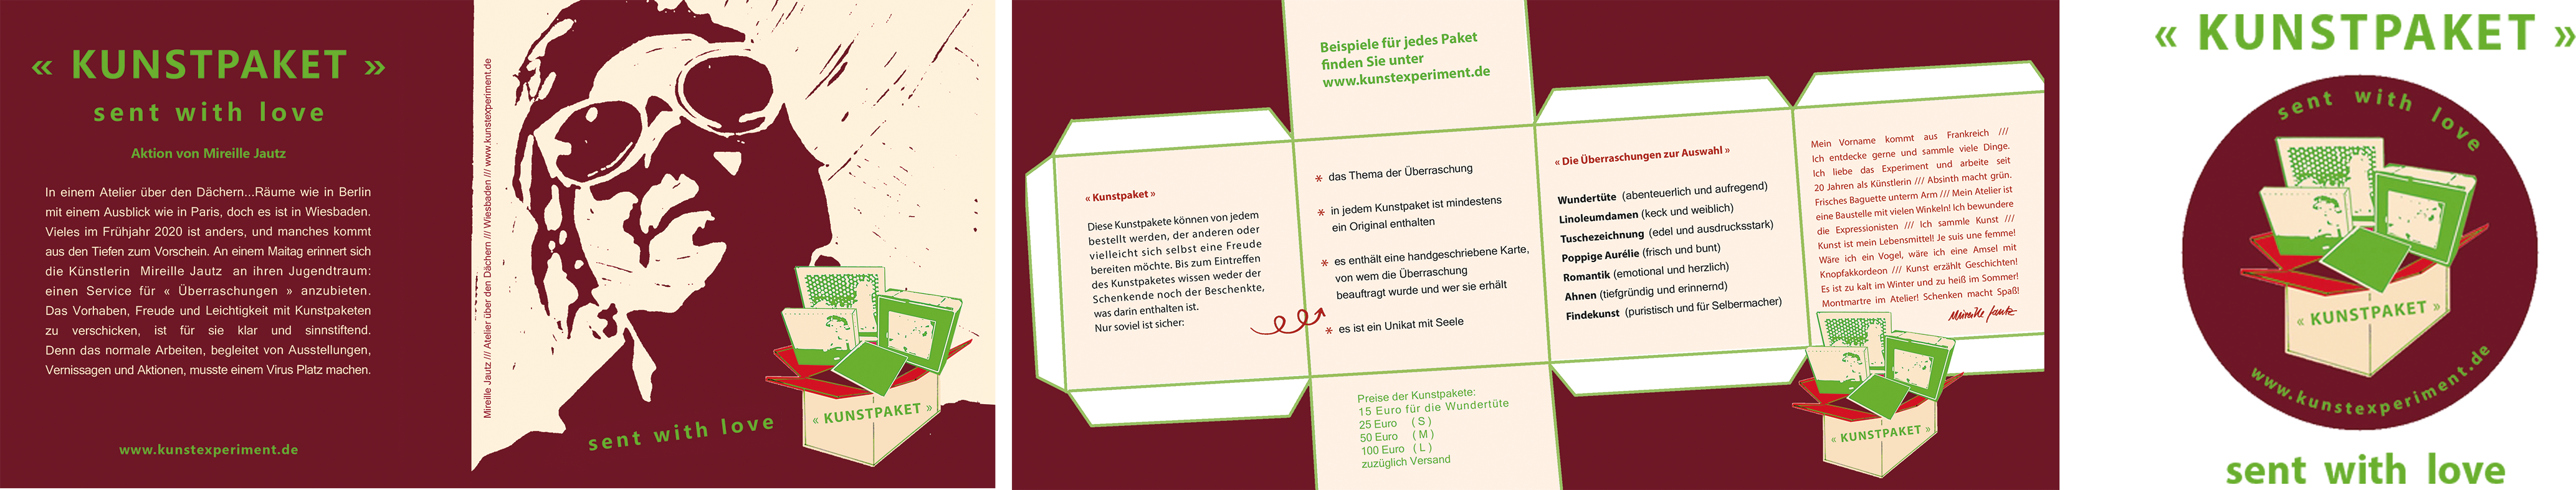 Kunstexperiment flyer